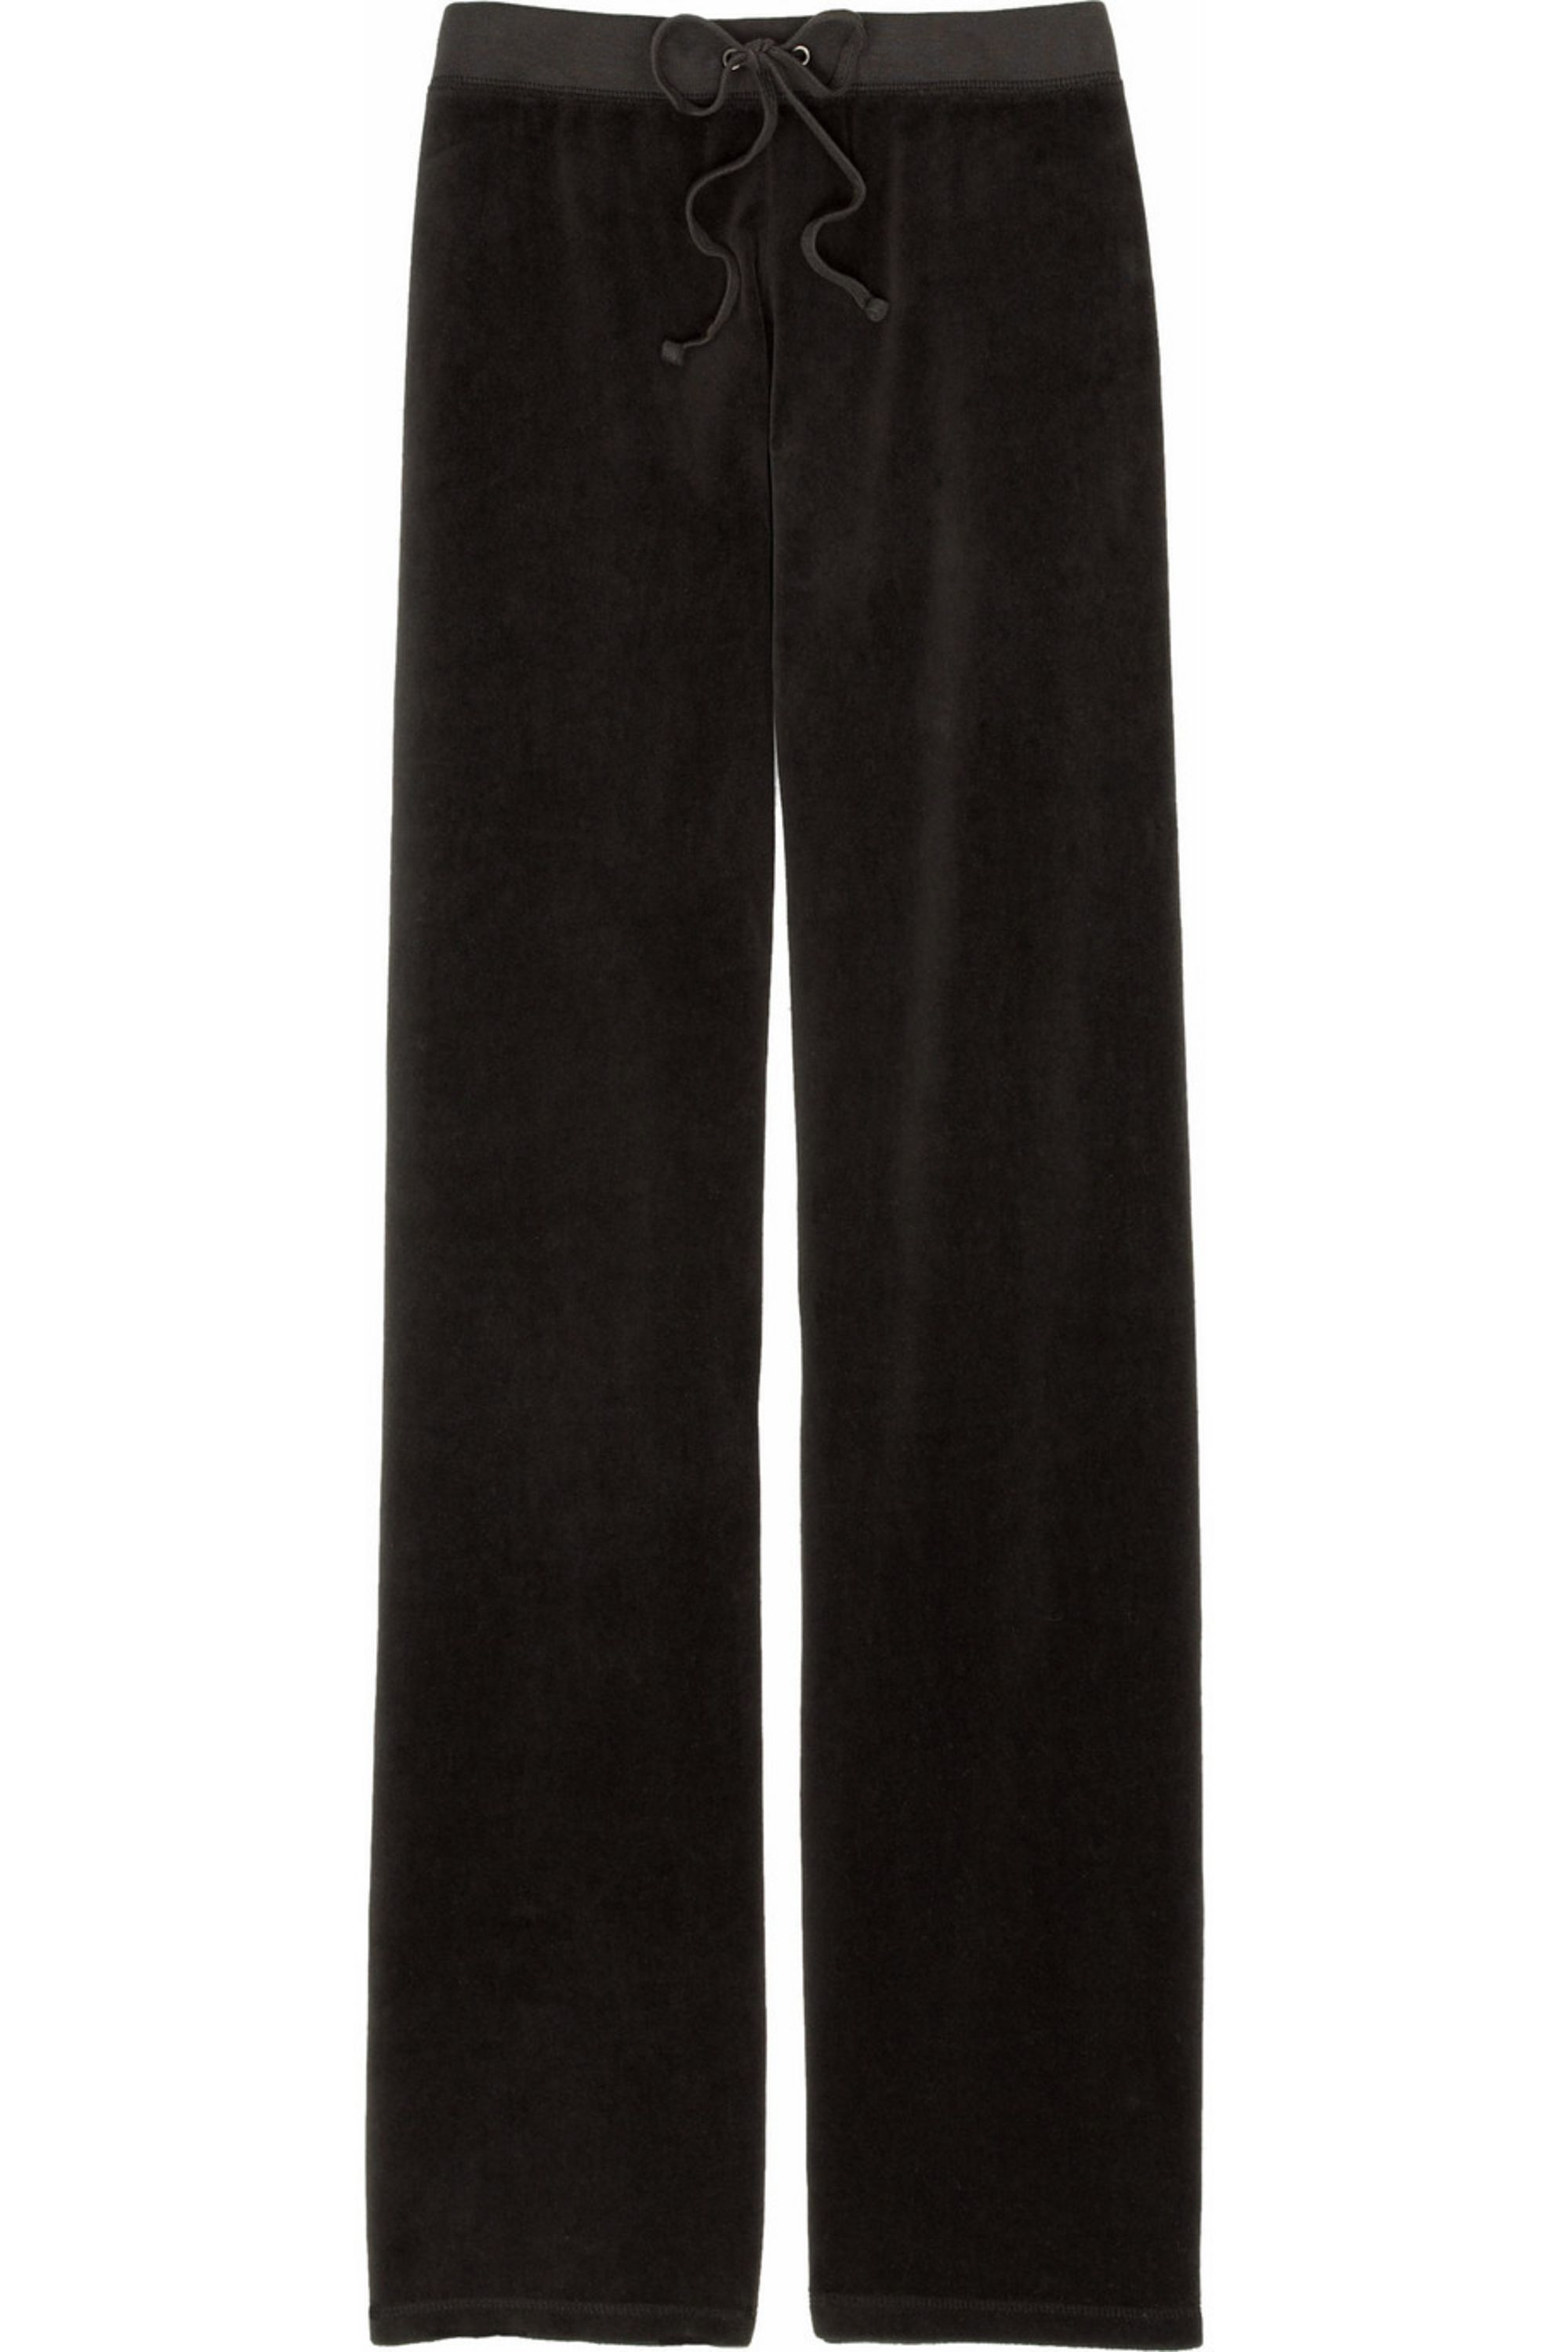 Chocolate Velour Track Pants Juicy Couture Net A Porter